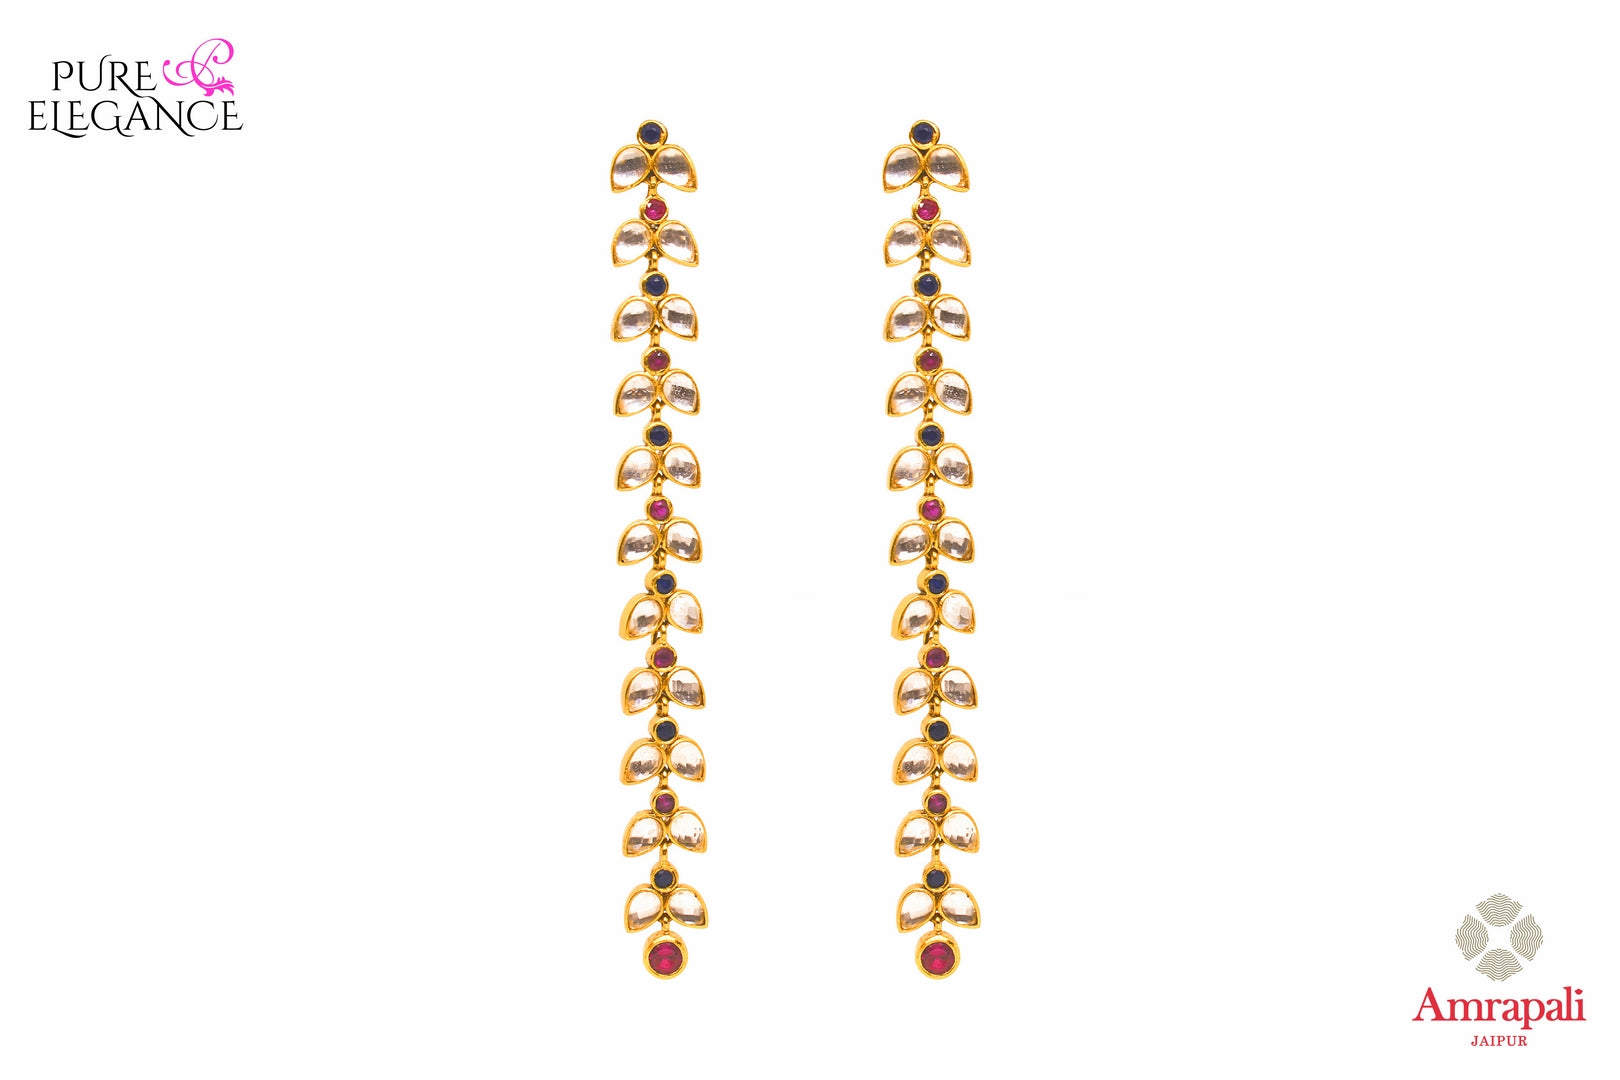 Buy Amrapali silver gold plated leaf string glass earrings online in USA. If you are looking for Indian jewelry in USA, then Pure Elegance Indian fashion store is the place for you. A whole range of exquisite silver gold plated earrings, necklaces is waiting for you on our shelves, you can also opt to shop online.-front view